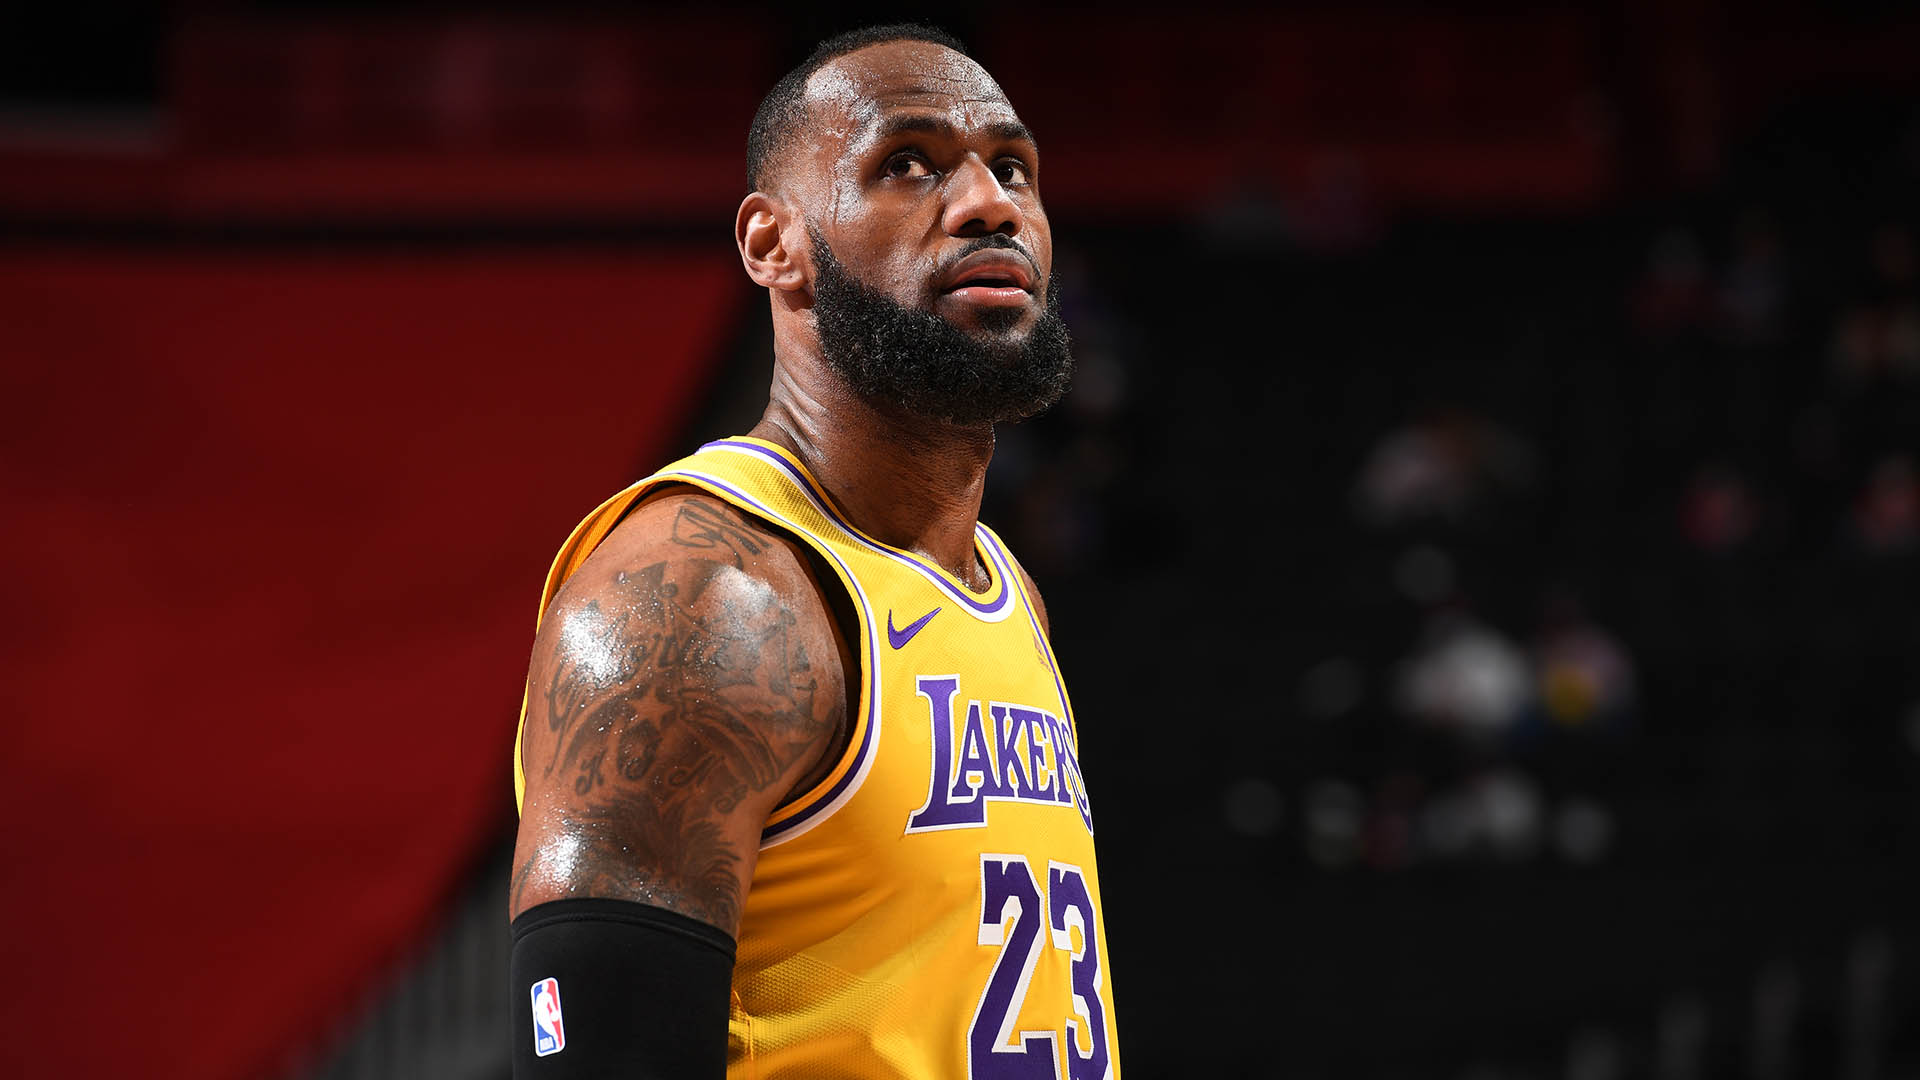 LeBron James (ankle) to miss game vs. Kings